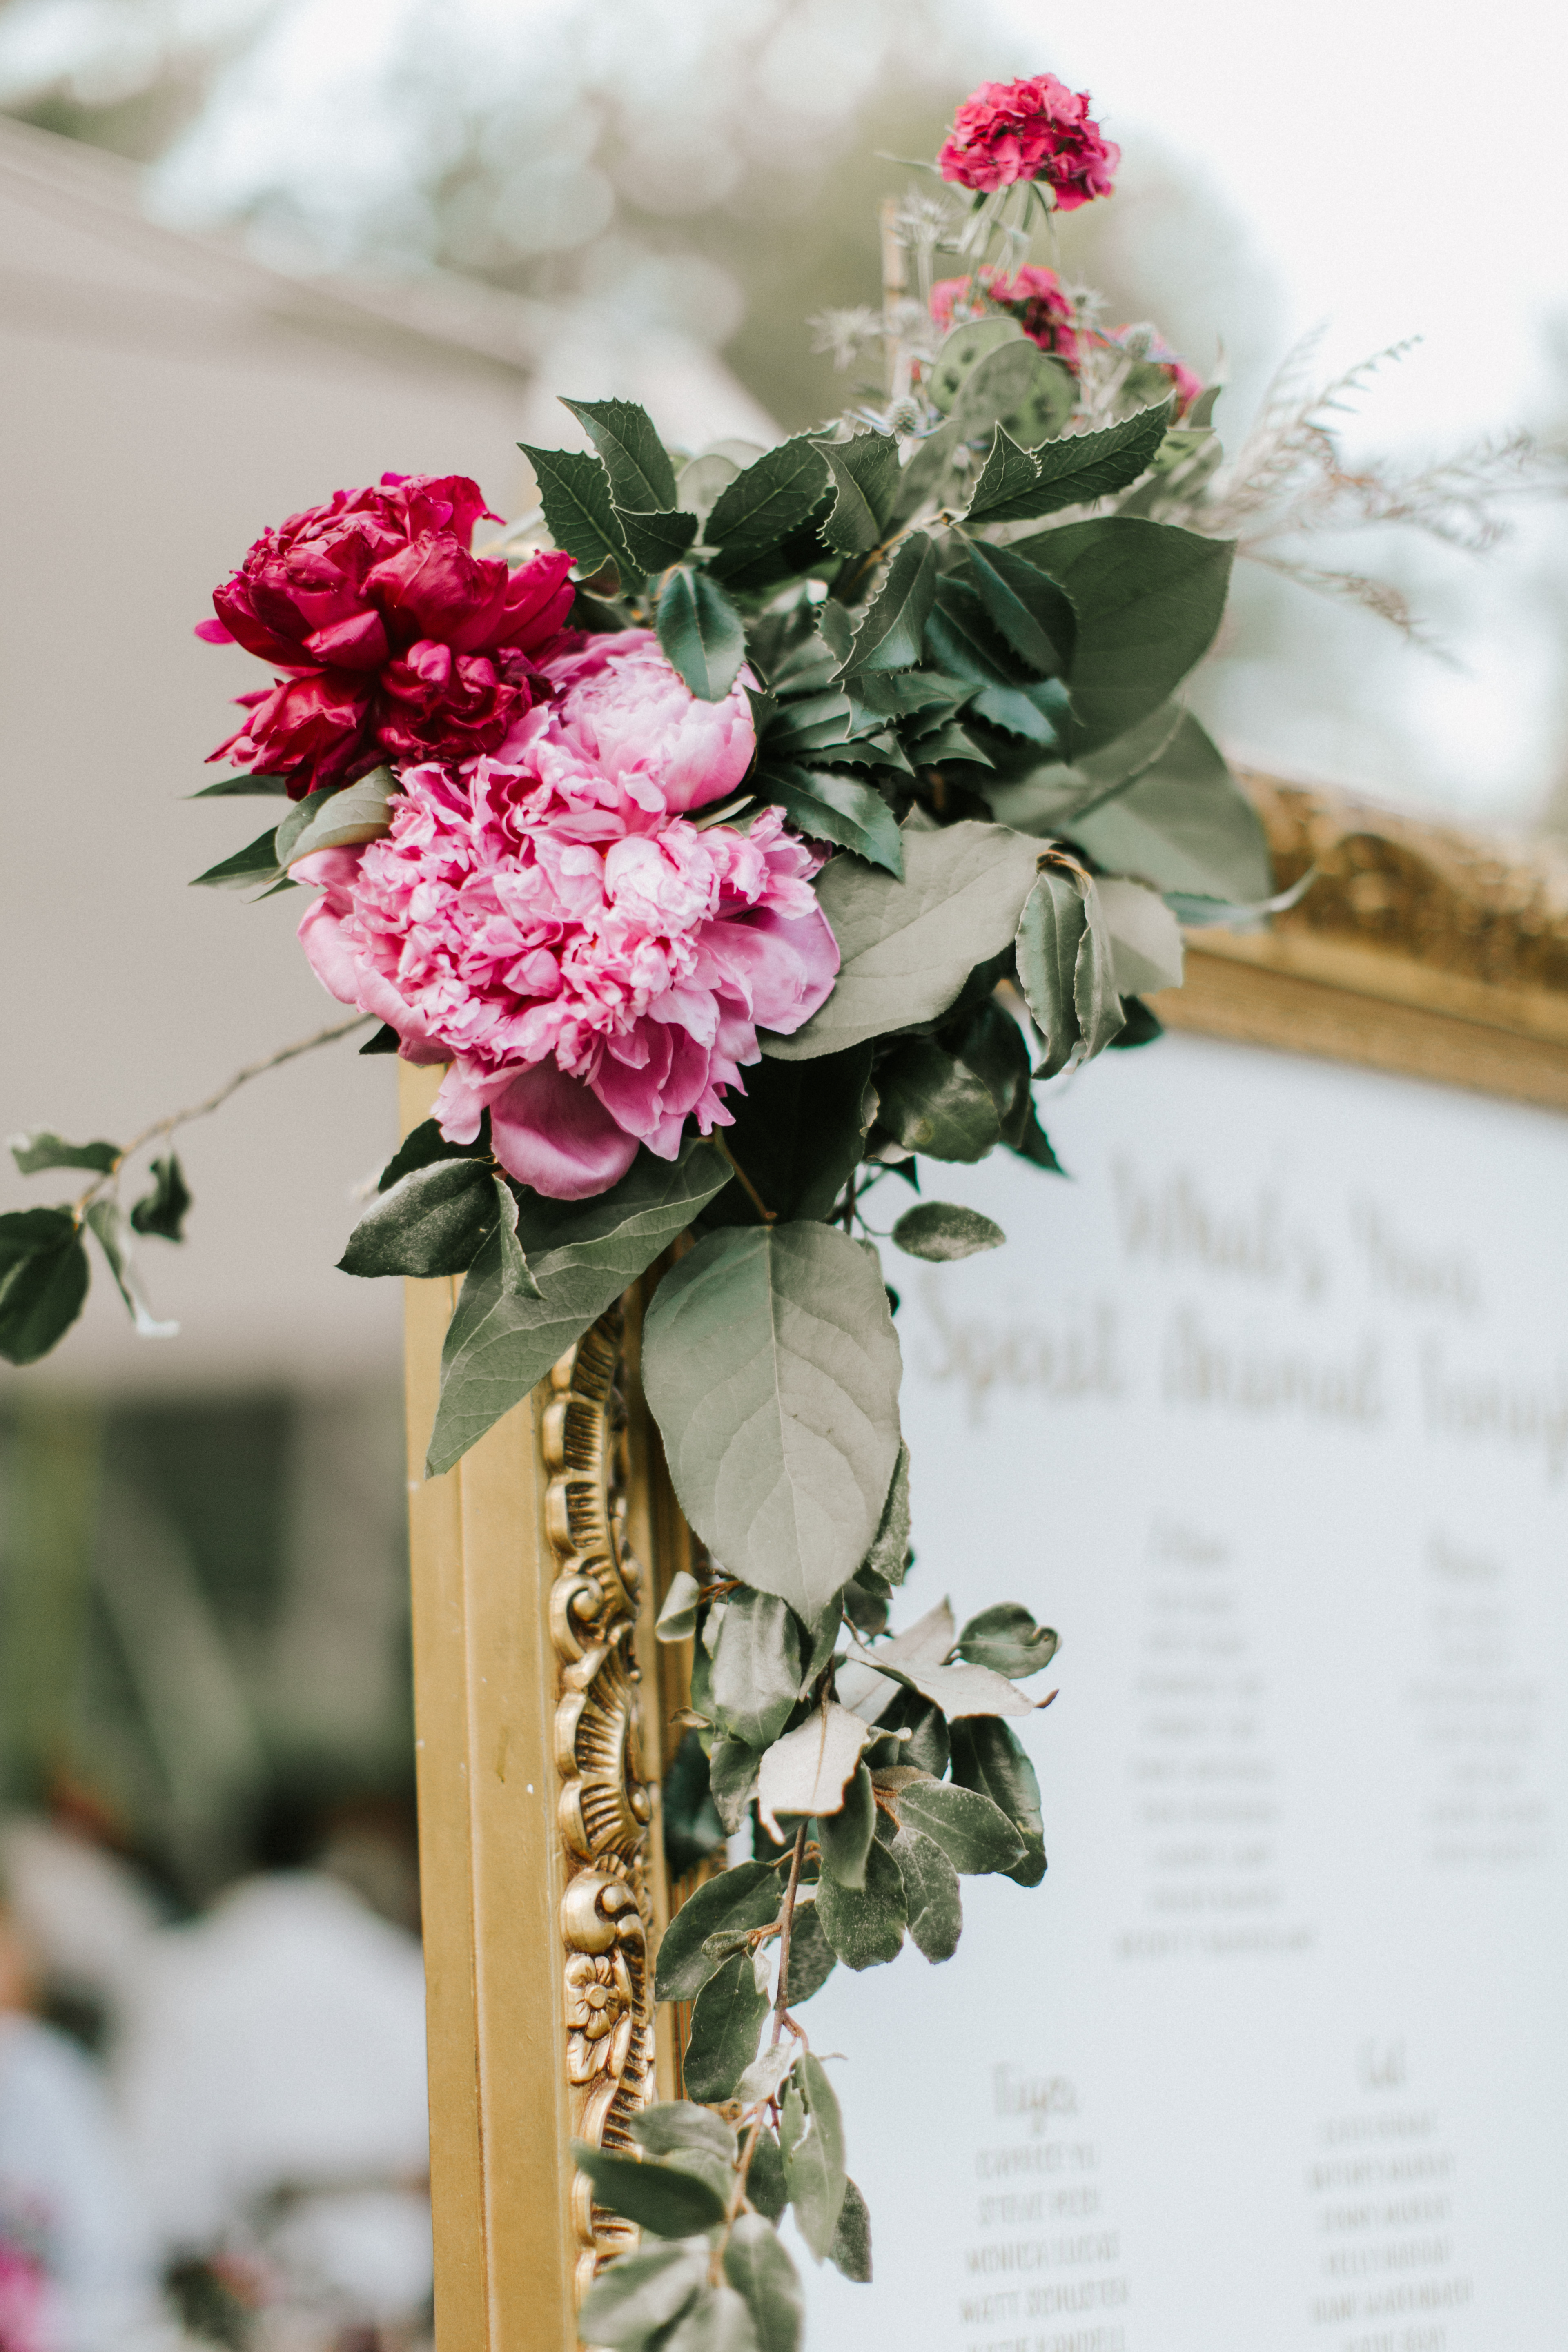 Floral details at Hidden Pond Wedding in Kennebunkport, Maine